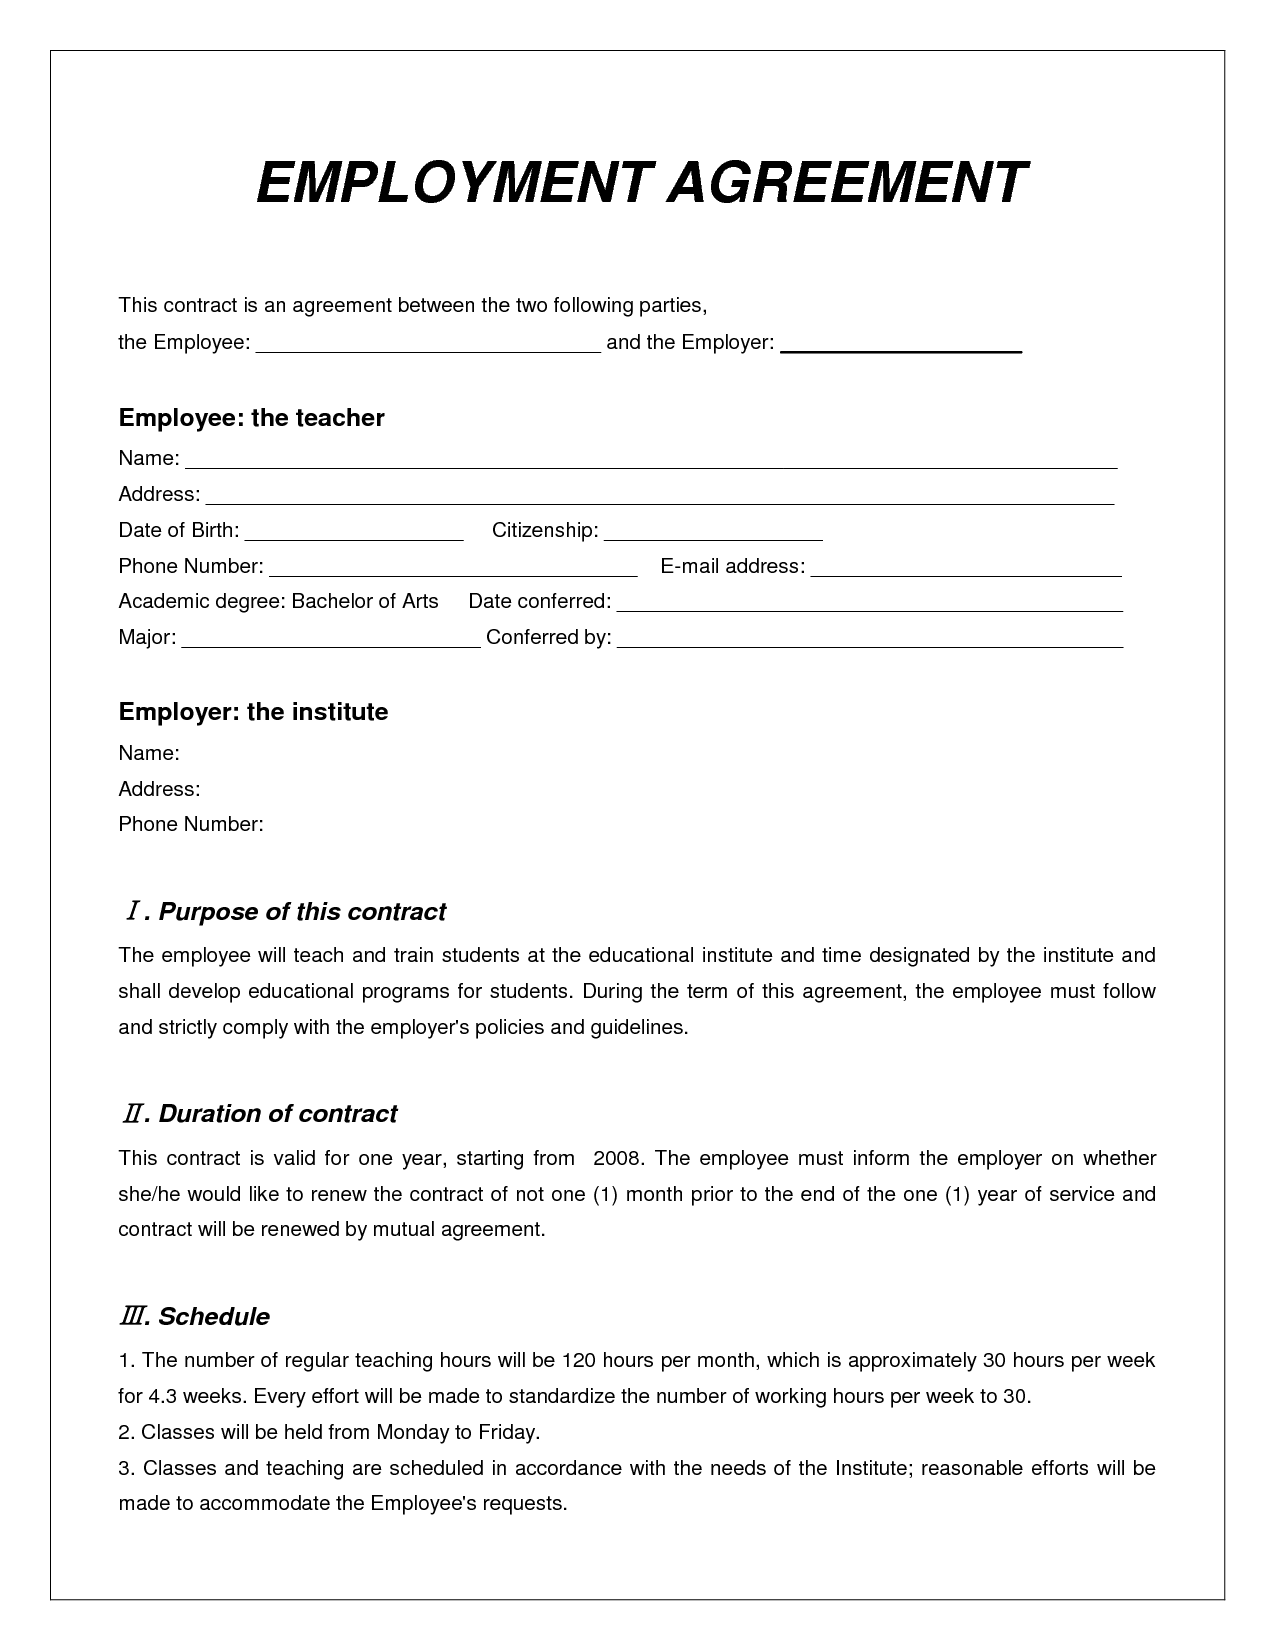 employment agreement contract template free printable. Black Bedroom Furniture Sets. Home Design Ideas